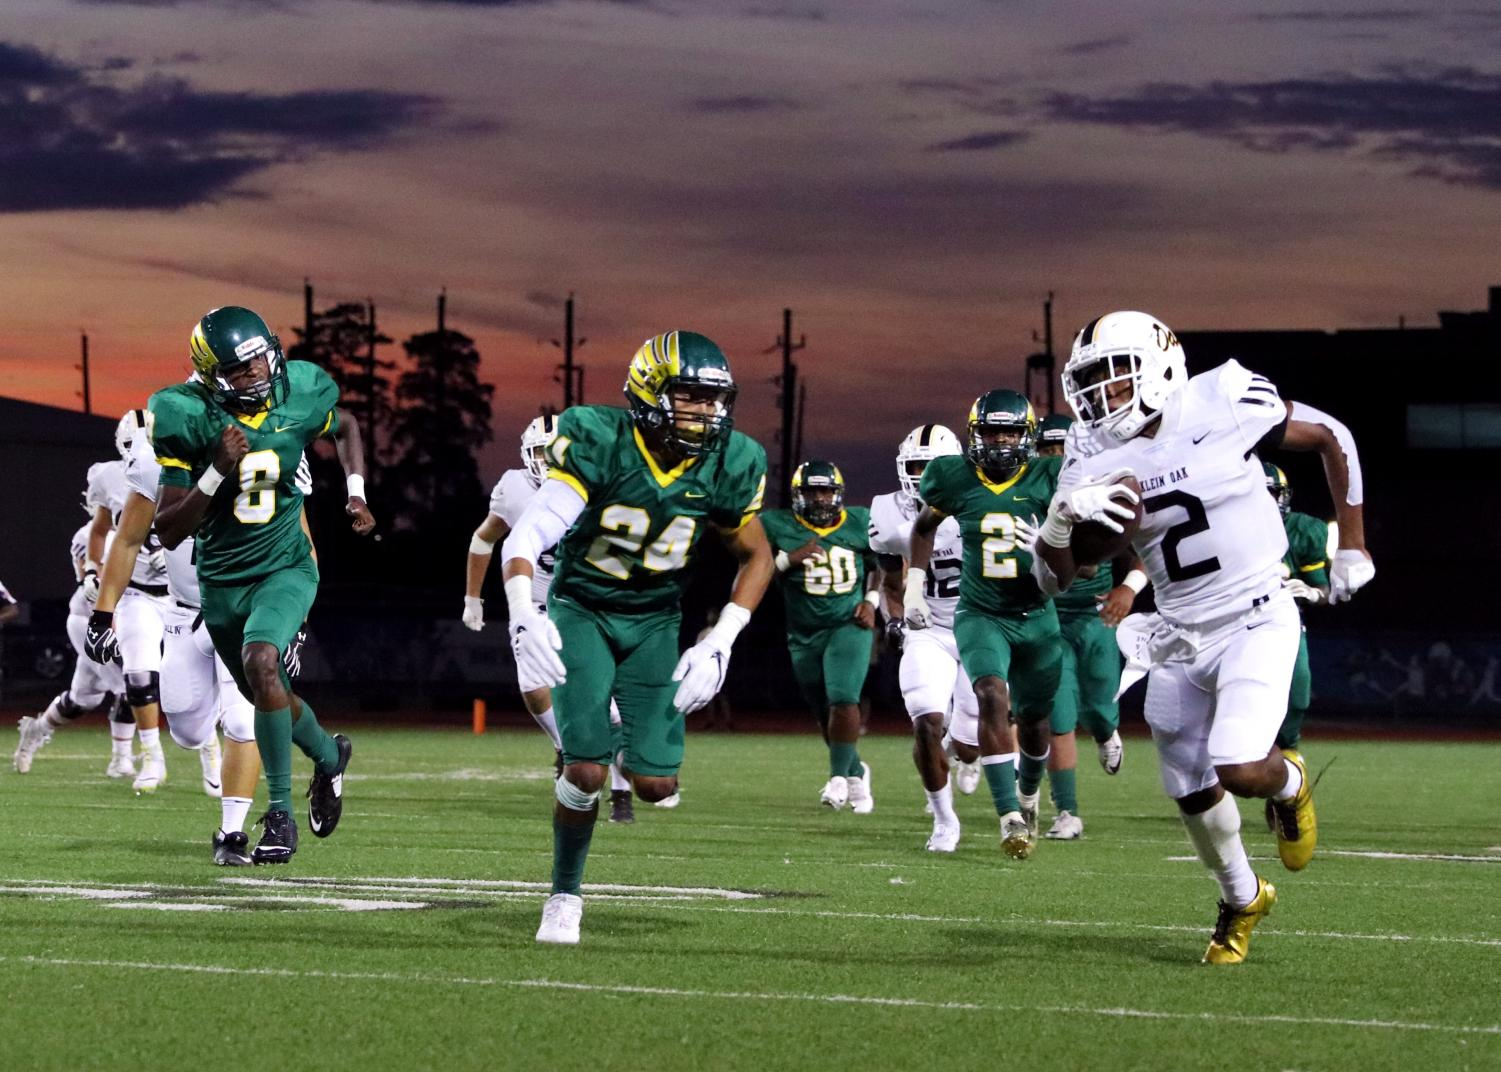 Junior running back Kendal Taylor sprints past the Klein Forest defense for a first down.